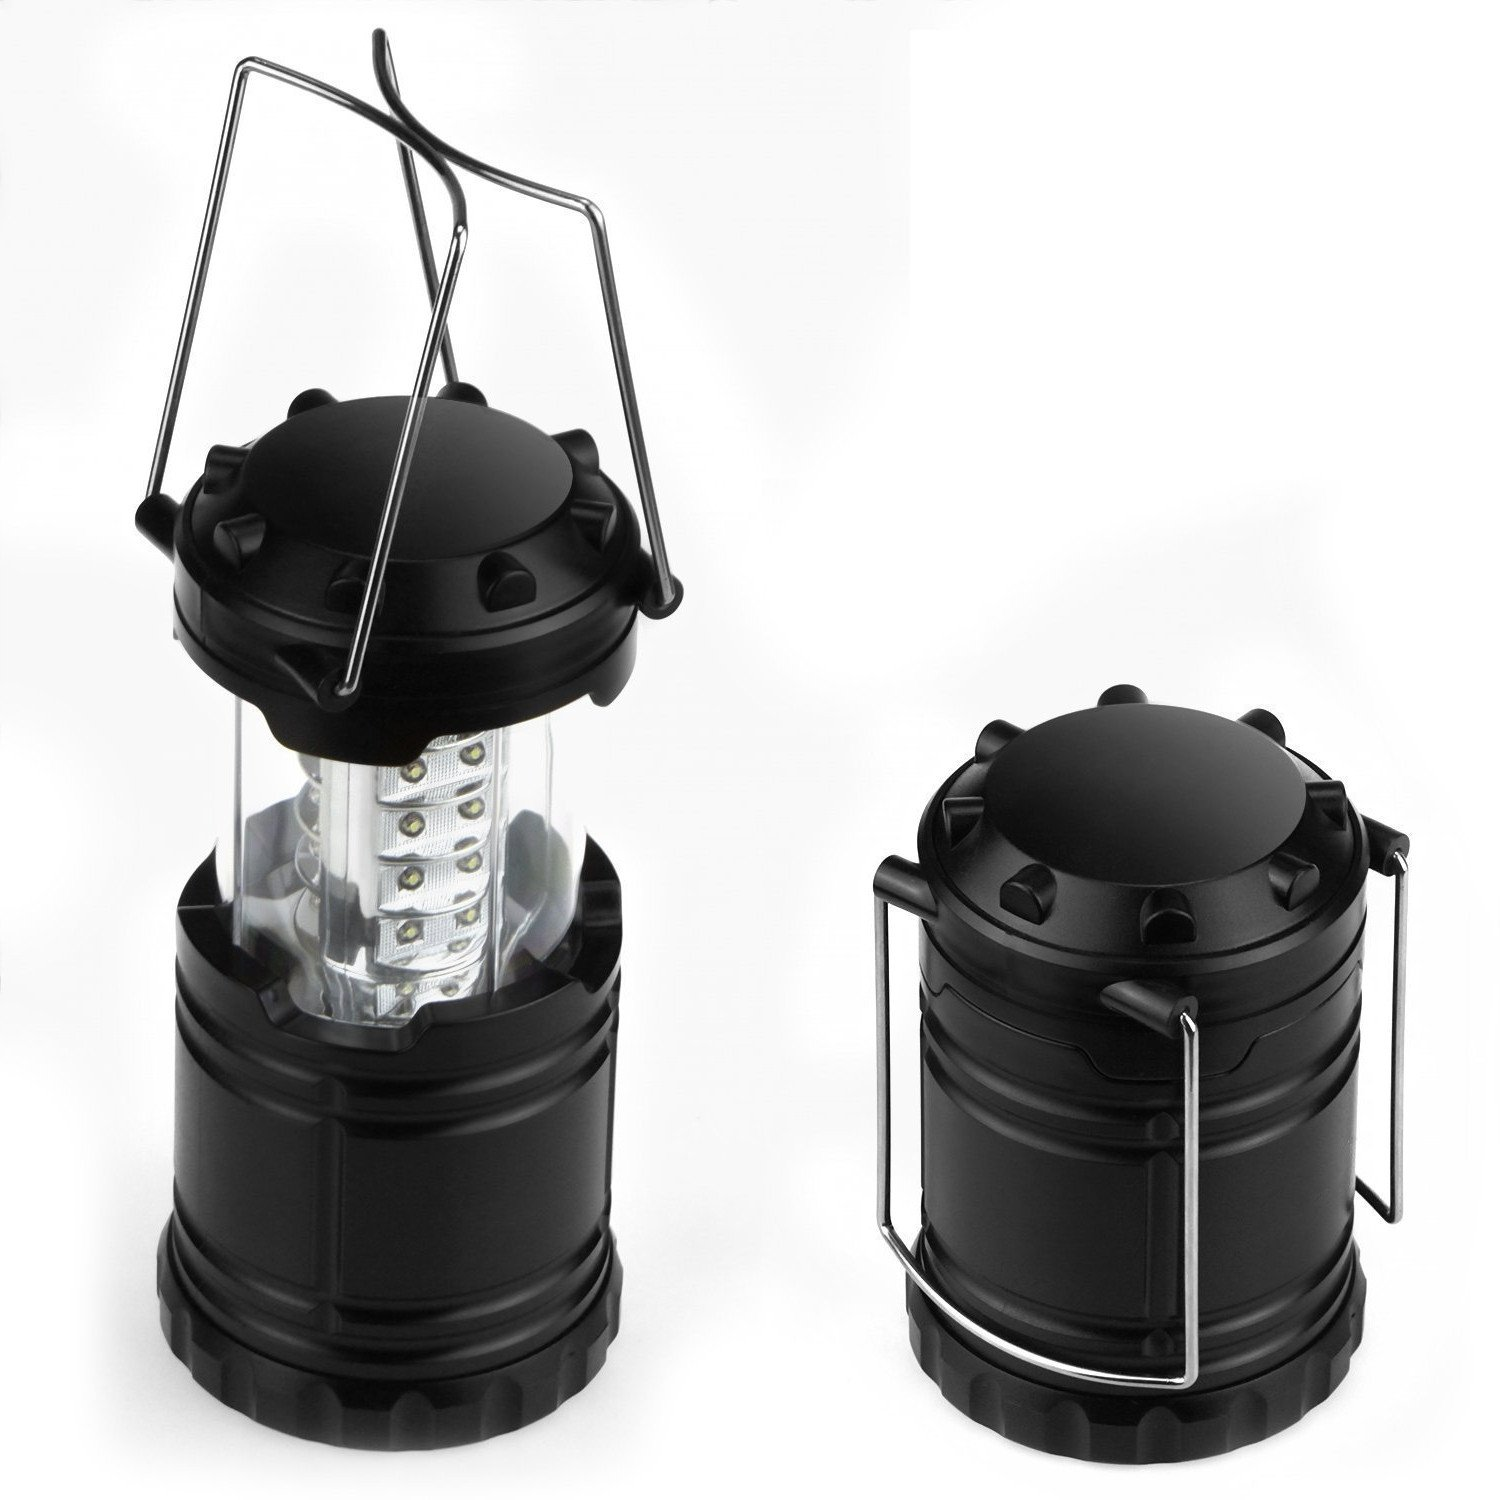 SHS 2Pieces of 30LEDs Collapsible Camping Lanterns Water-Resistant Home Garden Lantern Portable Outdoor Flashlights for Hiking Emergencies Battery Not Included